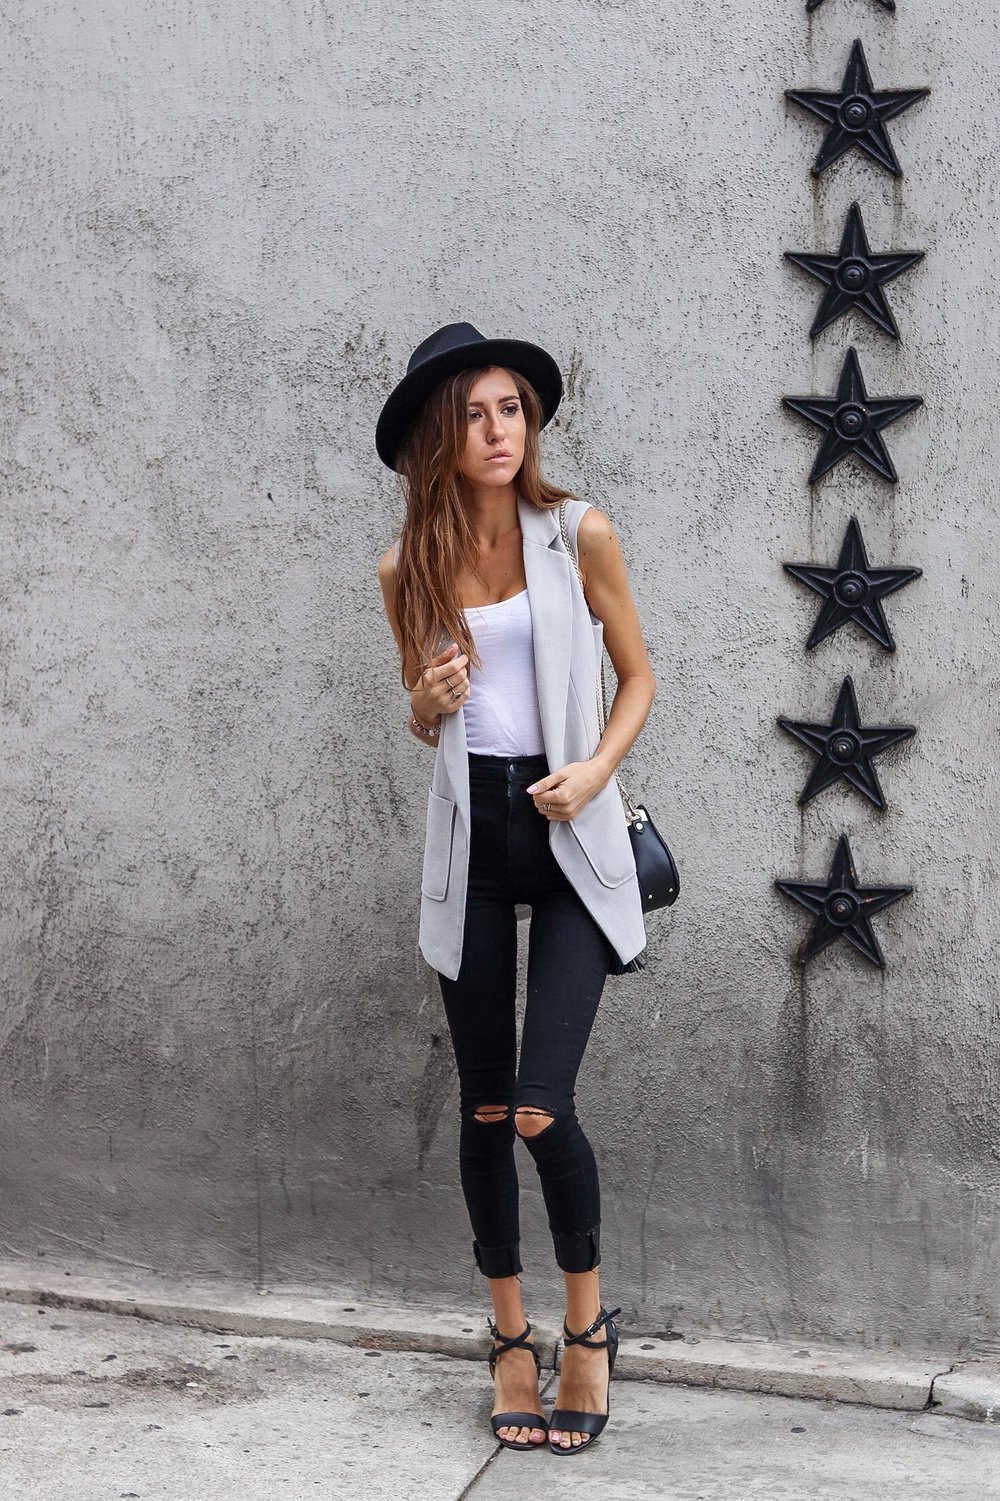 The+Hungarian+Brunette+Outfit+Inspo+-+OOTD+sleeveless+blazer+outfit